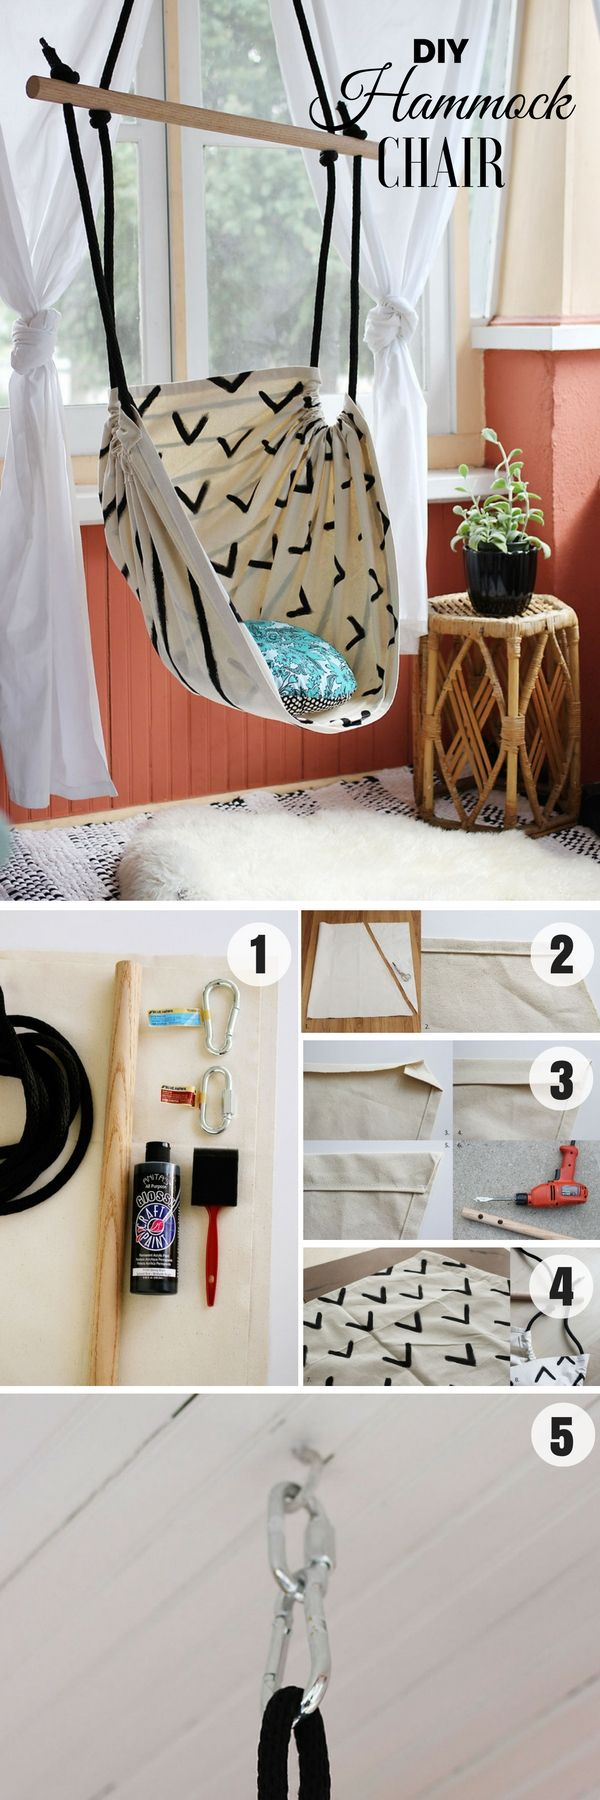 16 beautiful diy bedroom decor ideas that will inspire you - Bedroom Ideas Diy